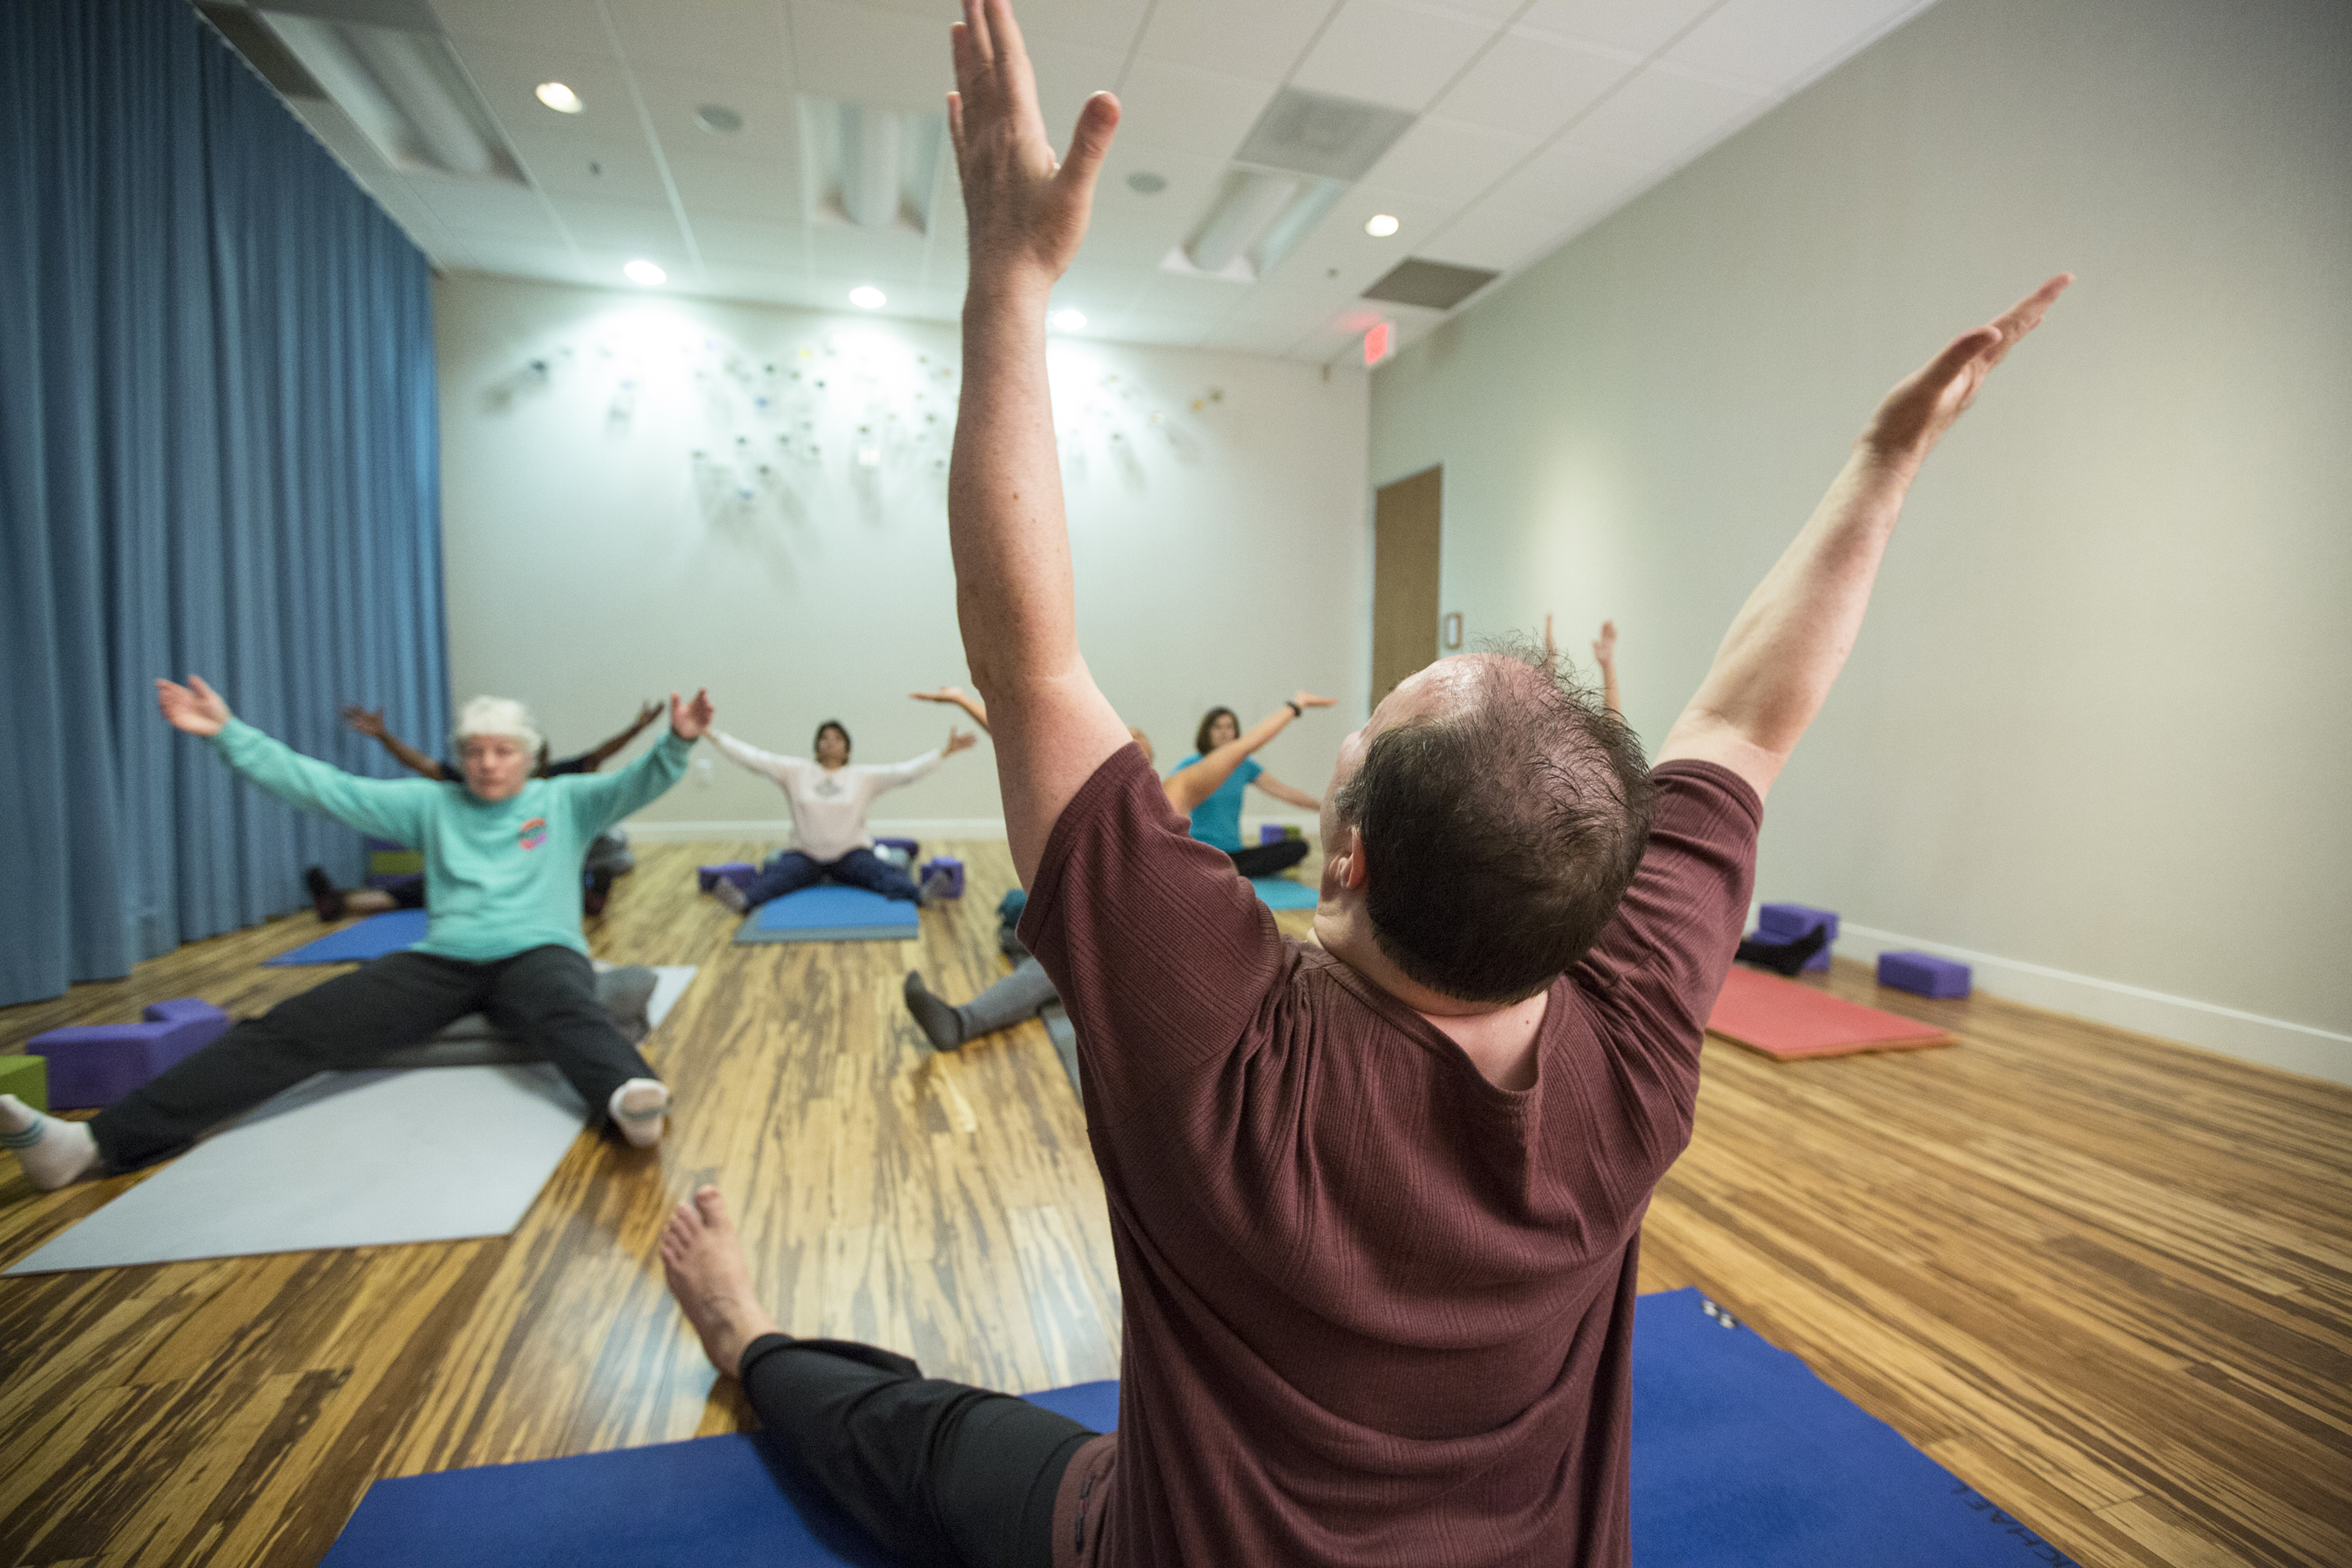 Male yoga instructor extends arms upward while seated in demonstration to yoga students.